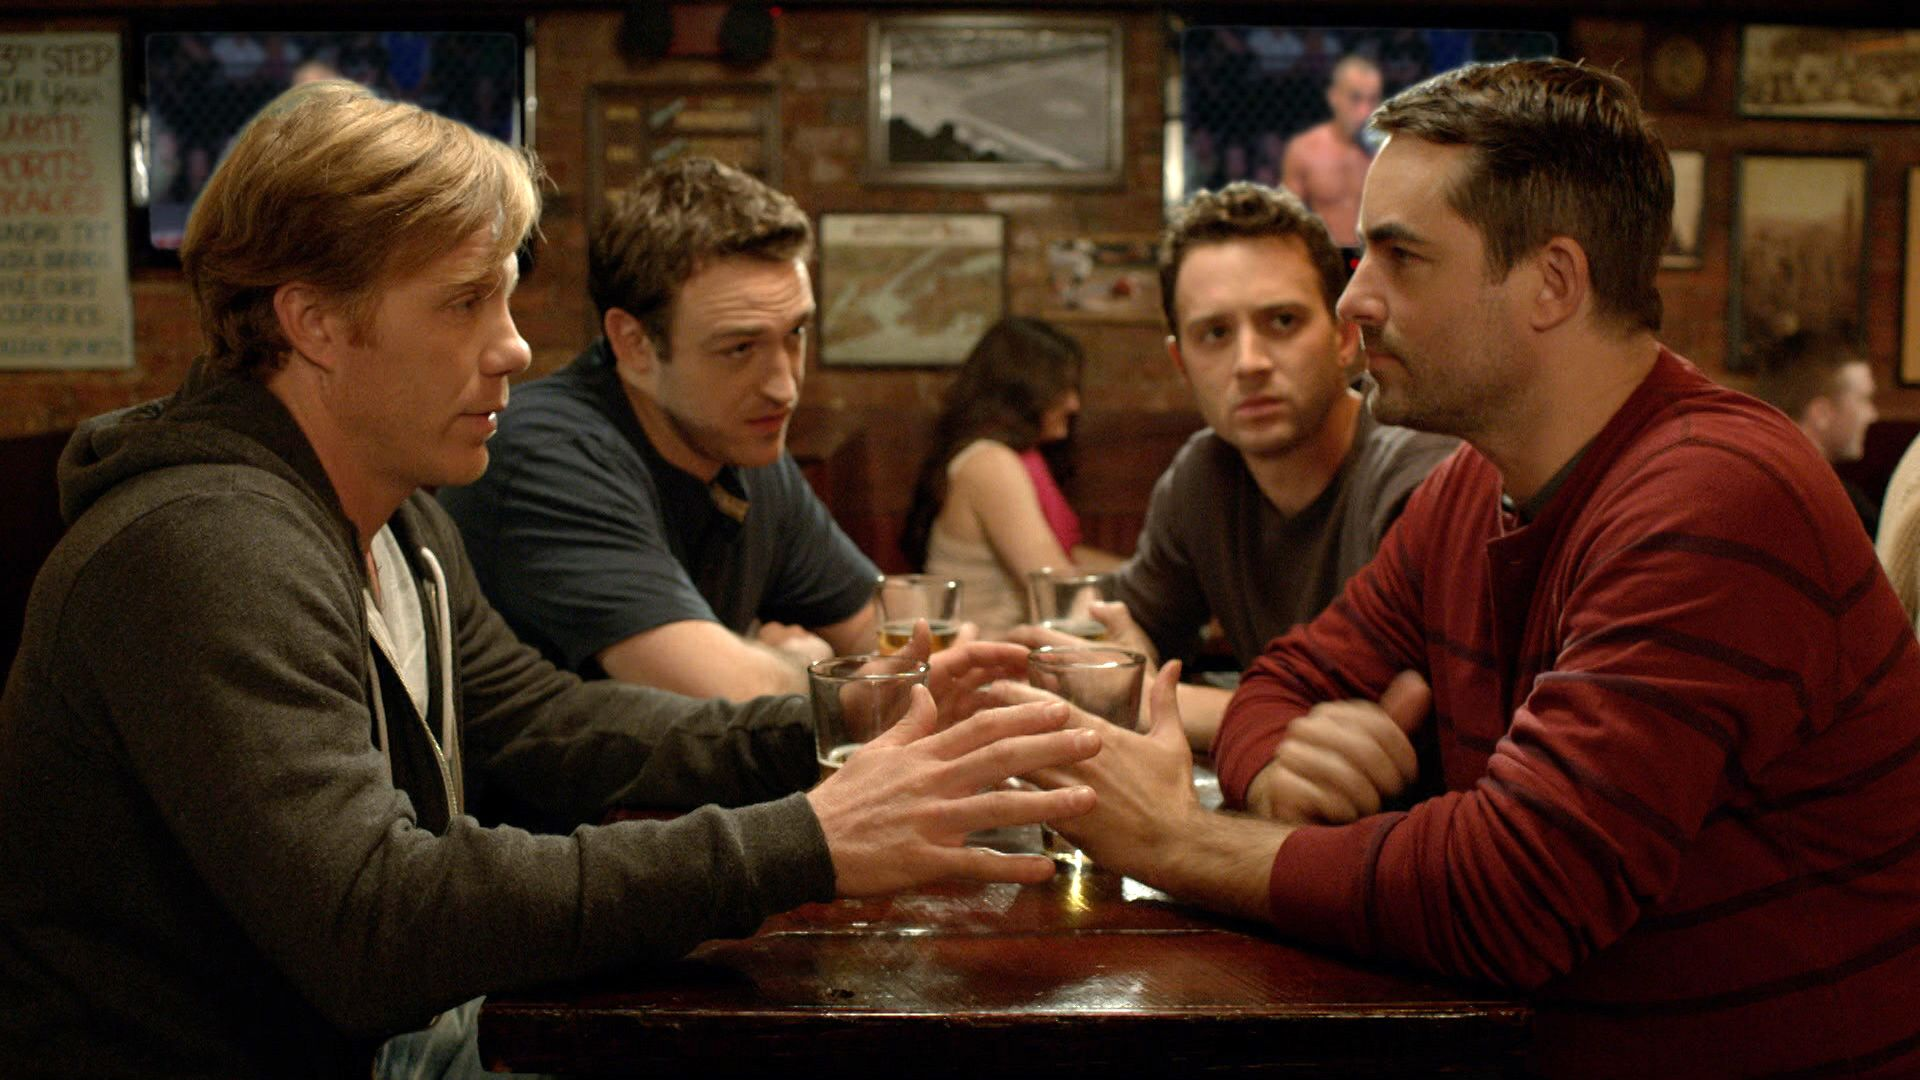 Image result for guys talking in bar